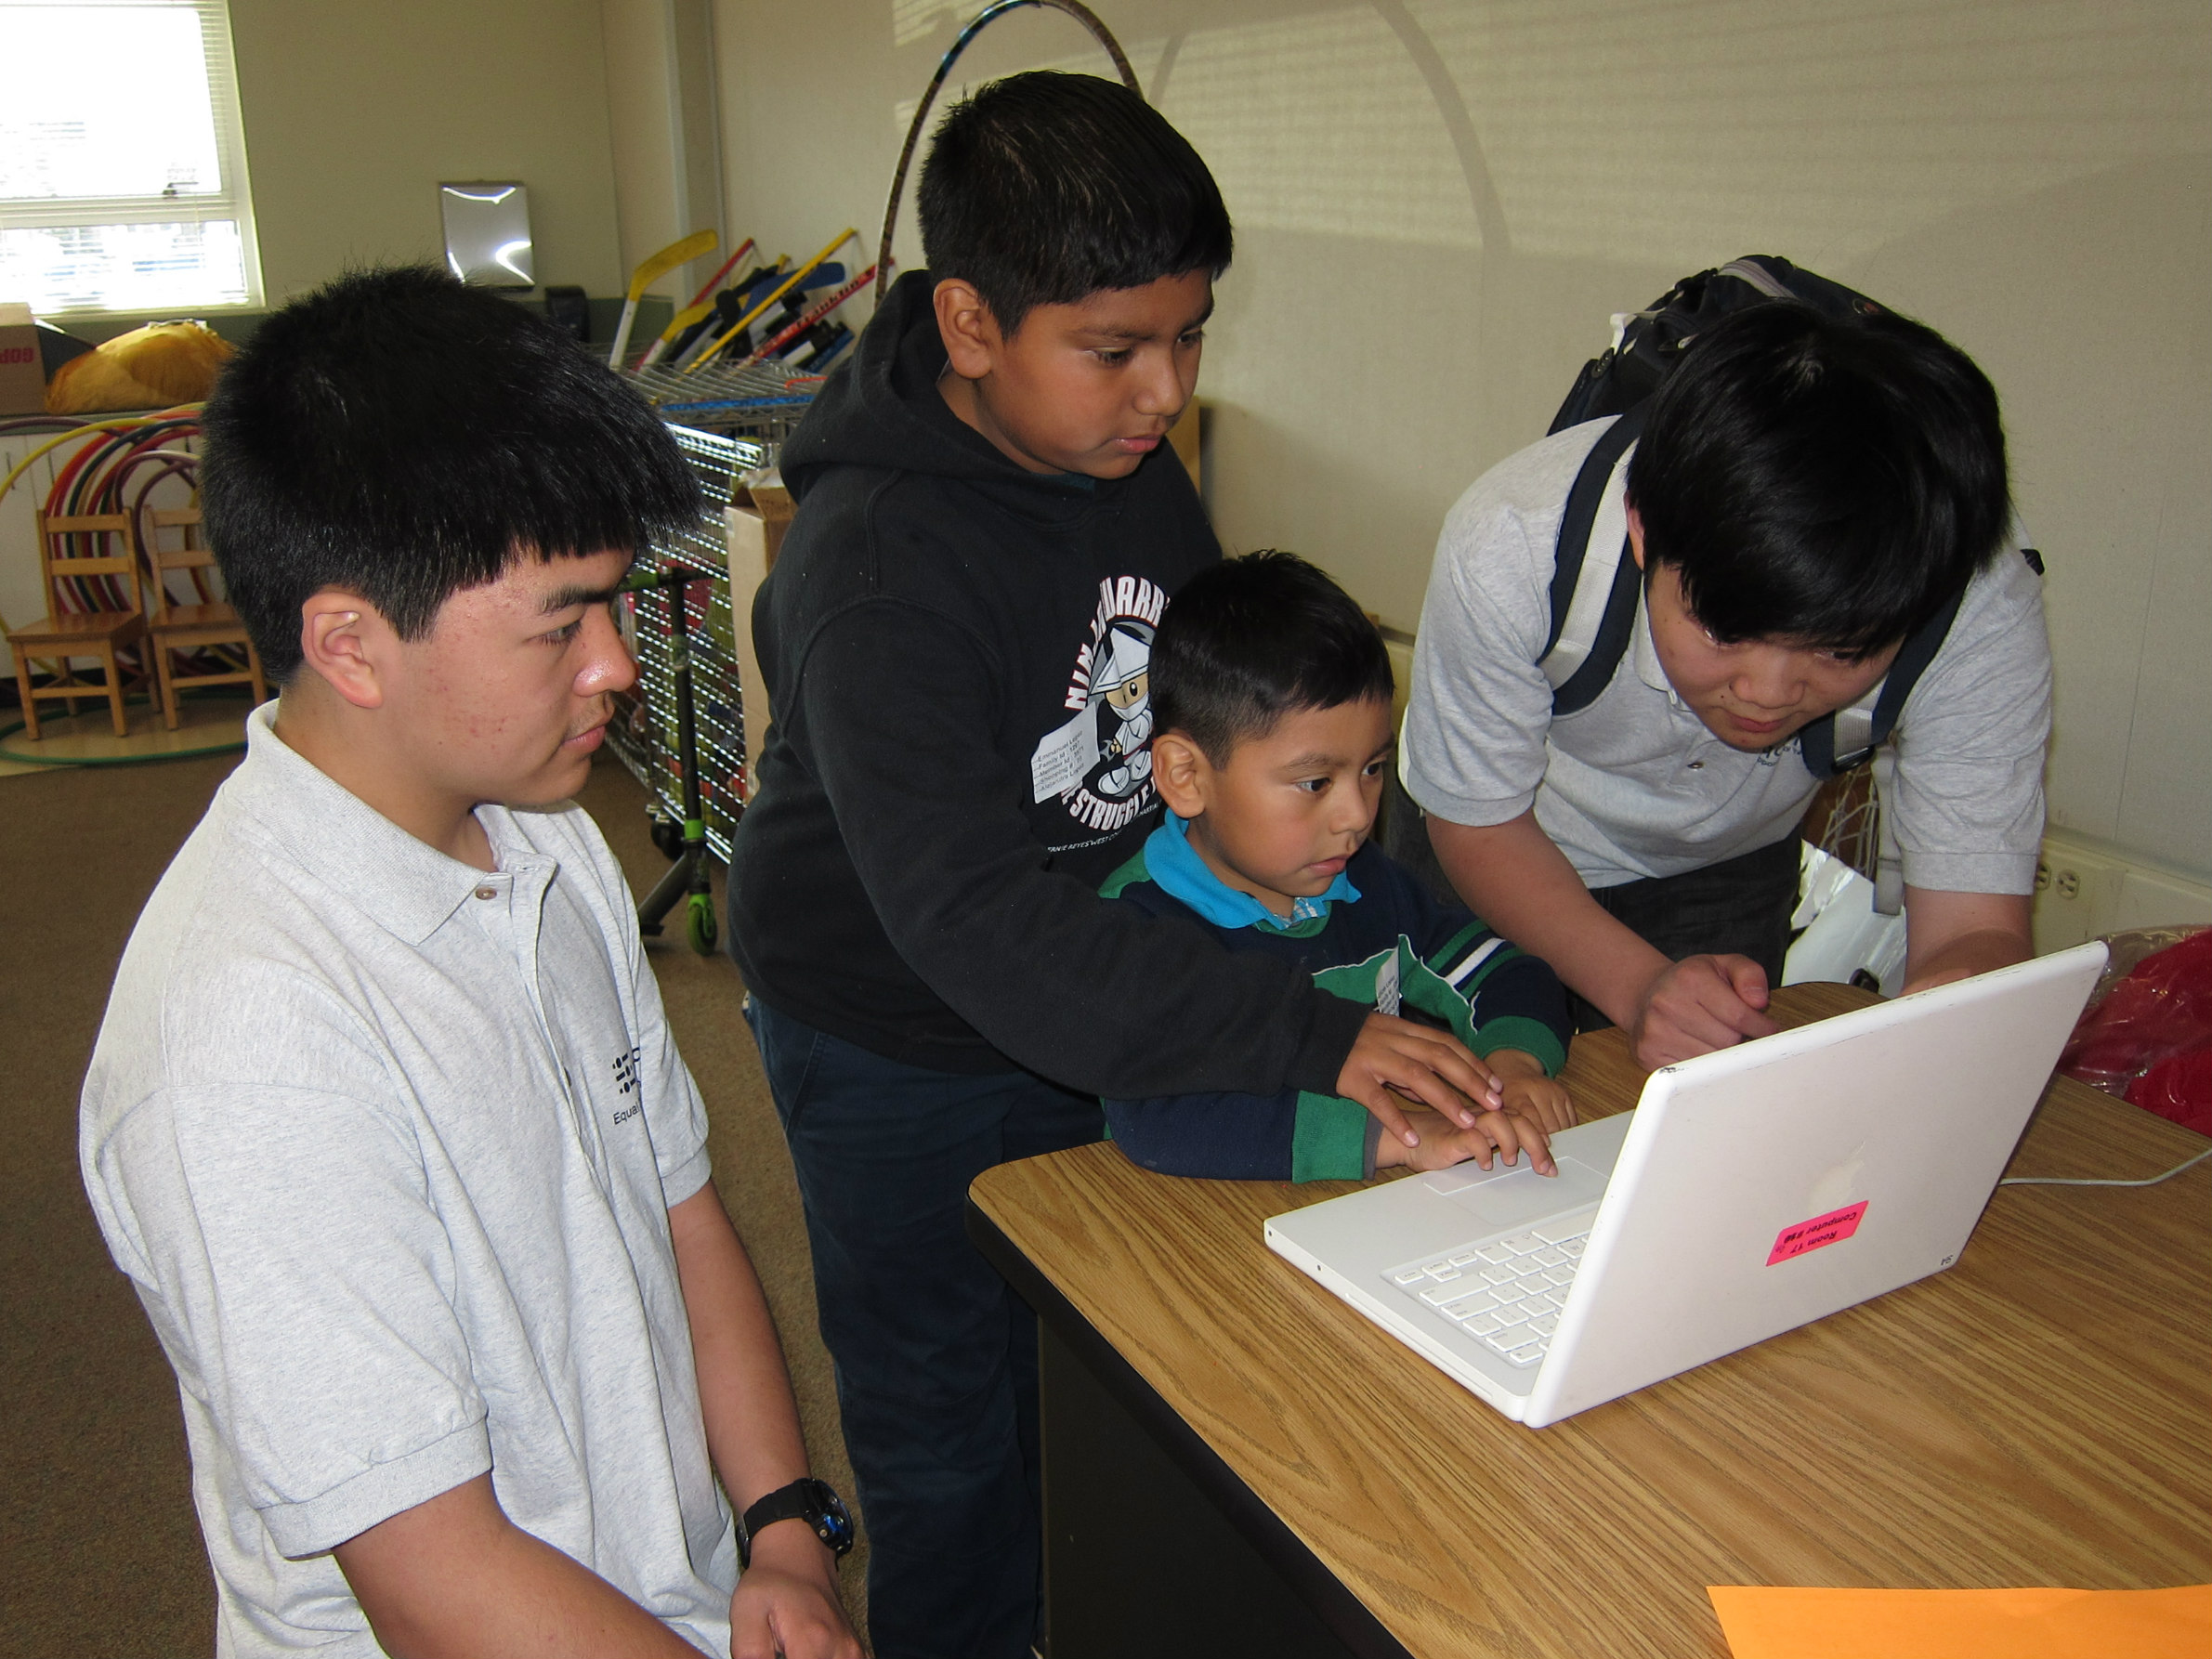 EqOpTech student leaders providing orientation to student on his first refurbished laptop